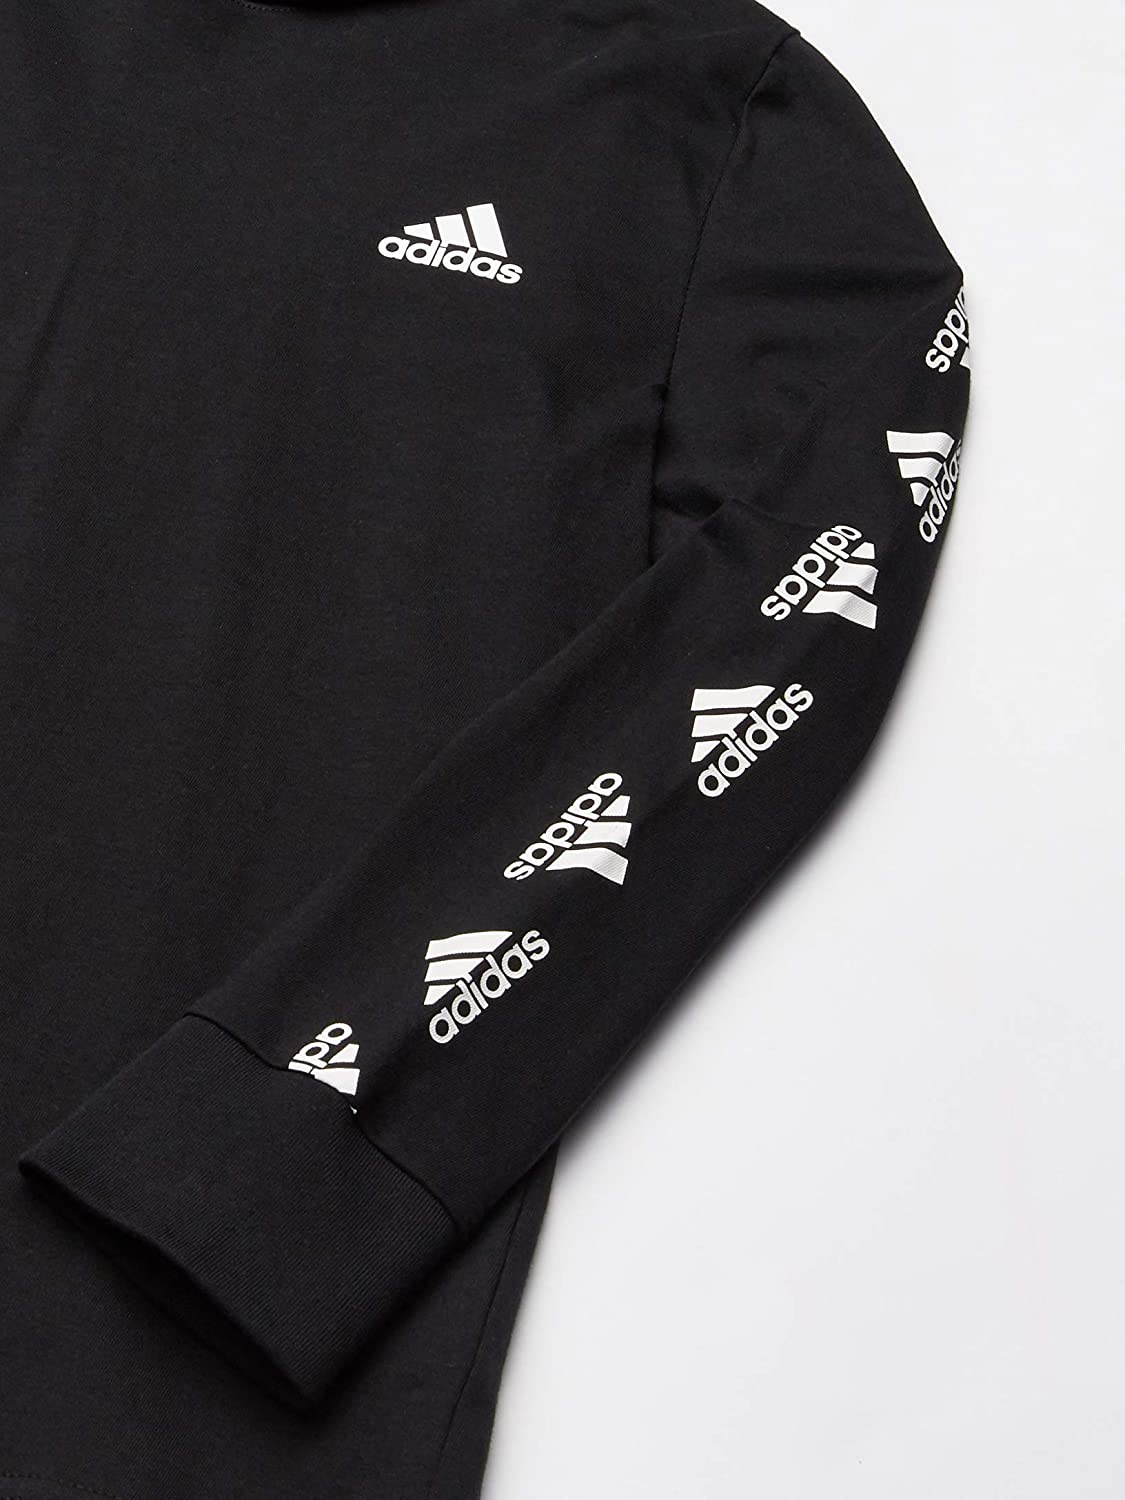 adidas Boys Long Sleeve Cotton Jersey Hooded T-Shirt Tee